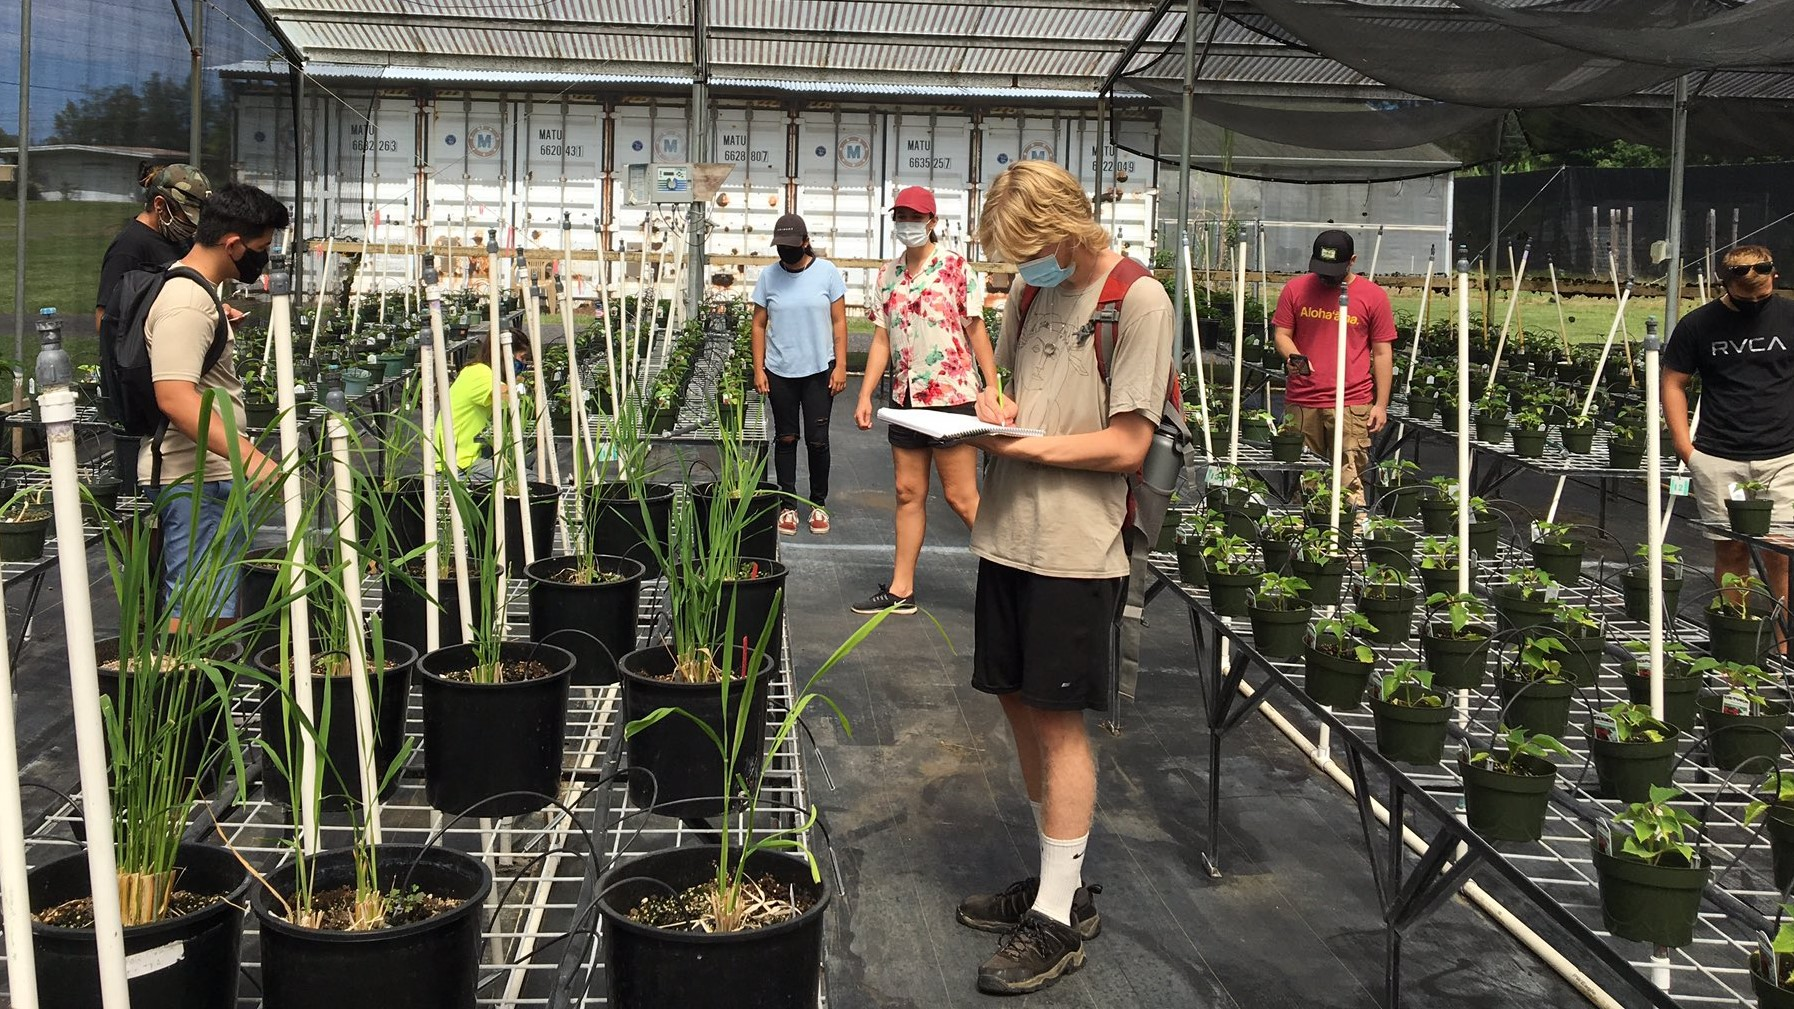 Student in masks, distant from each other, in greenhouse.